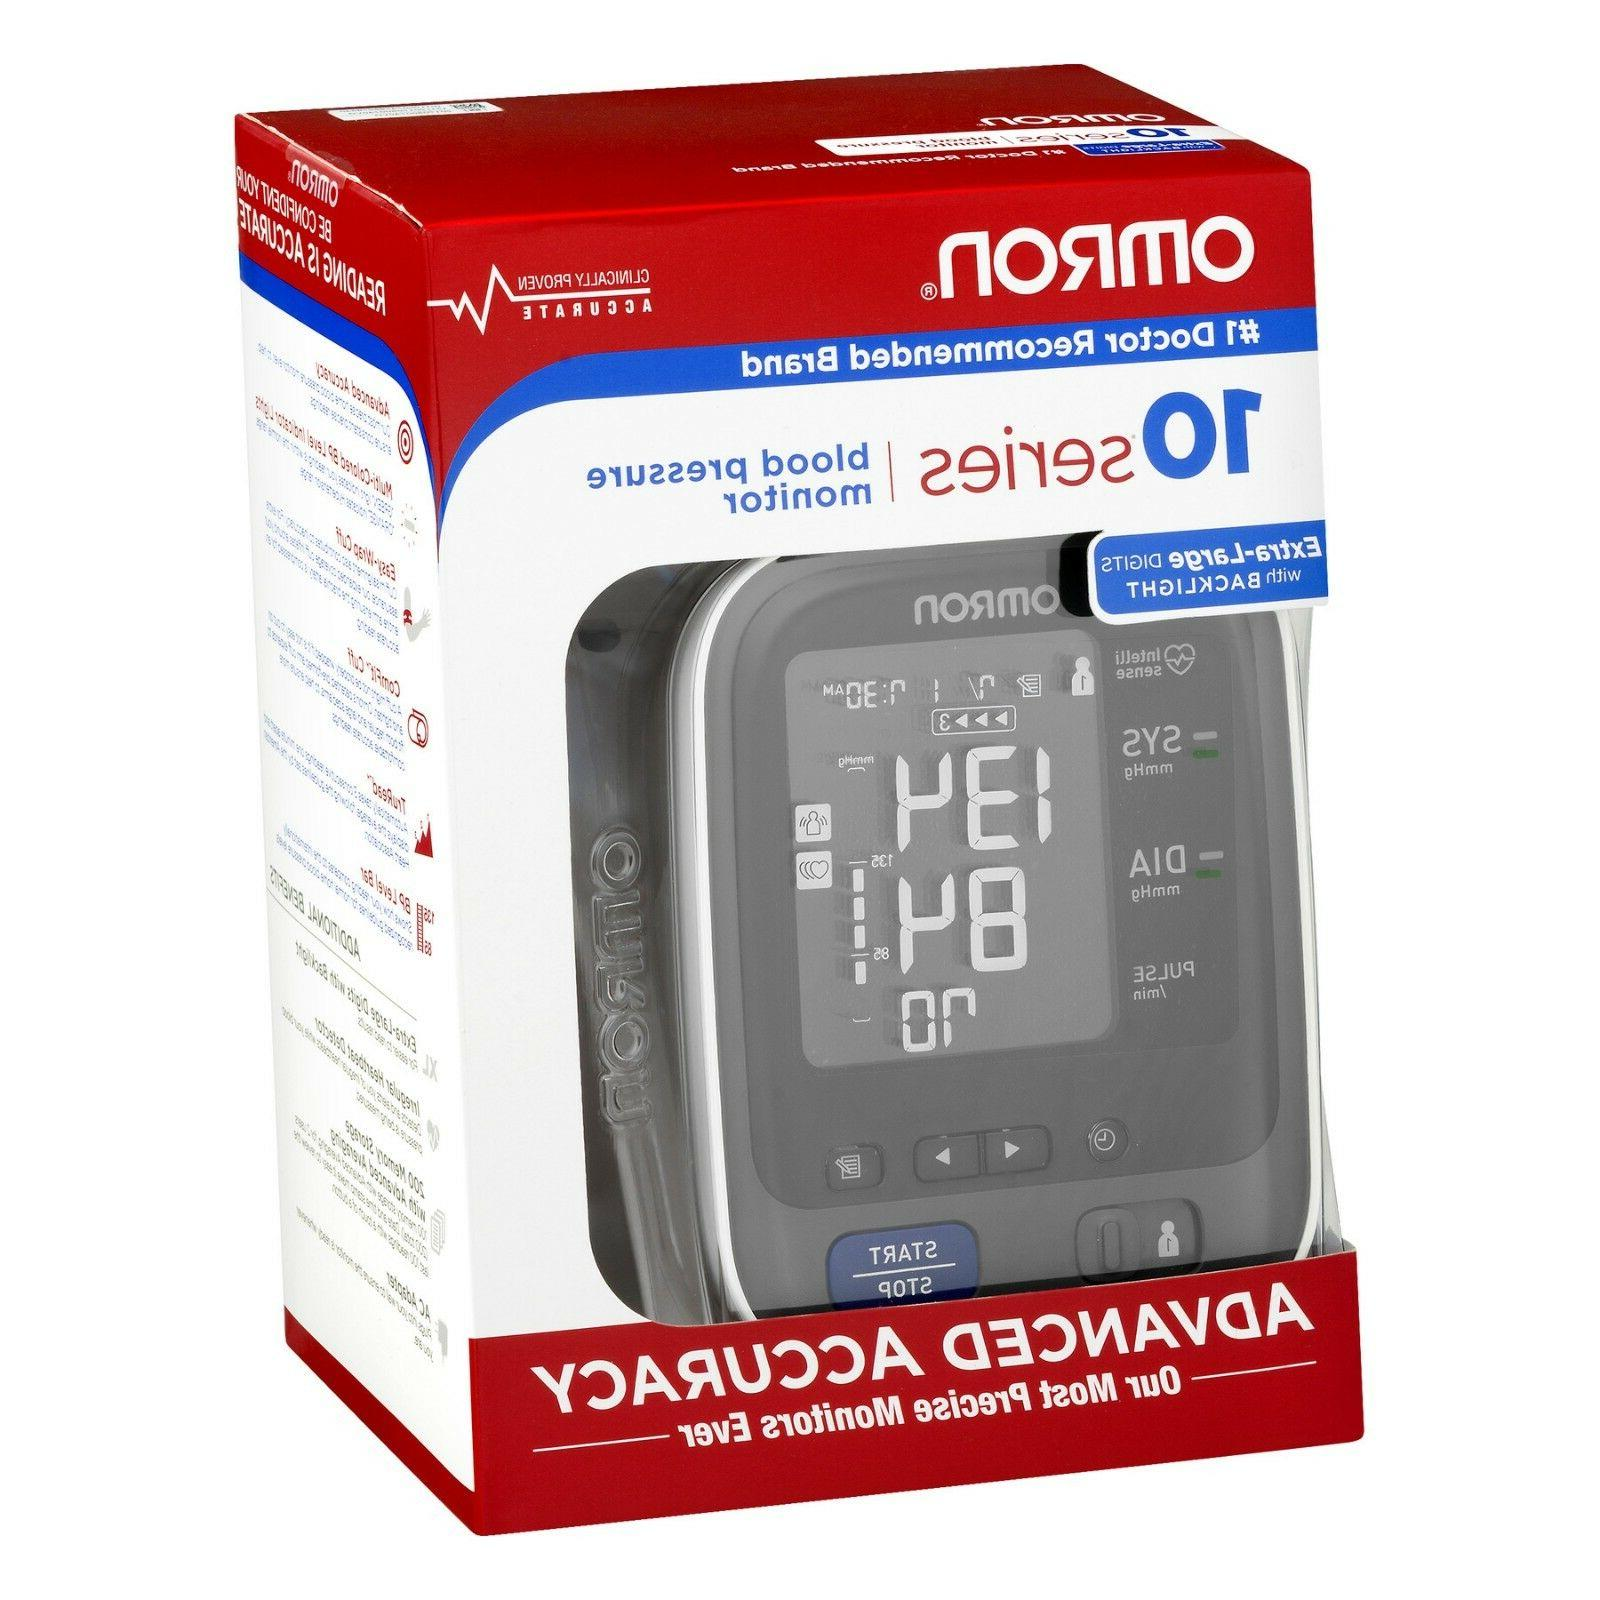 OMRON BP785N 10 Upper Arm Monitor Fits Arms